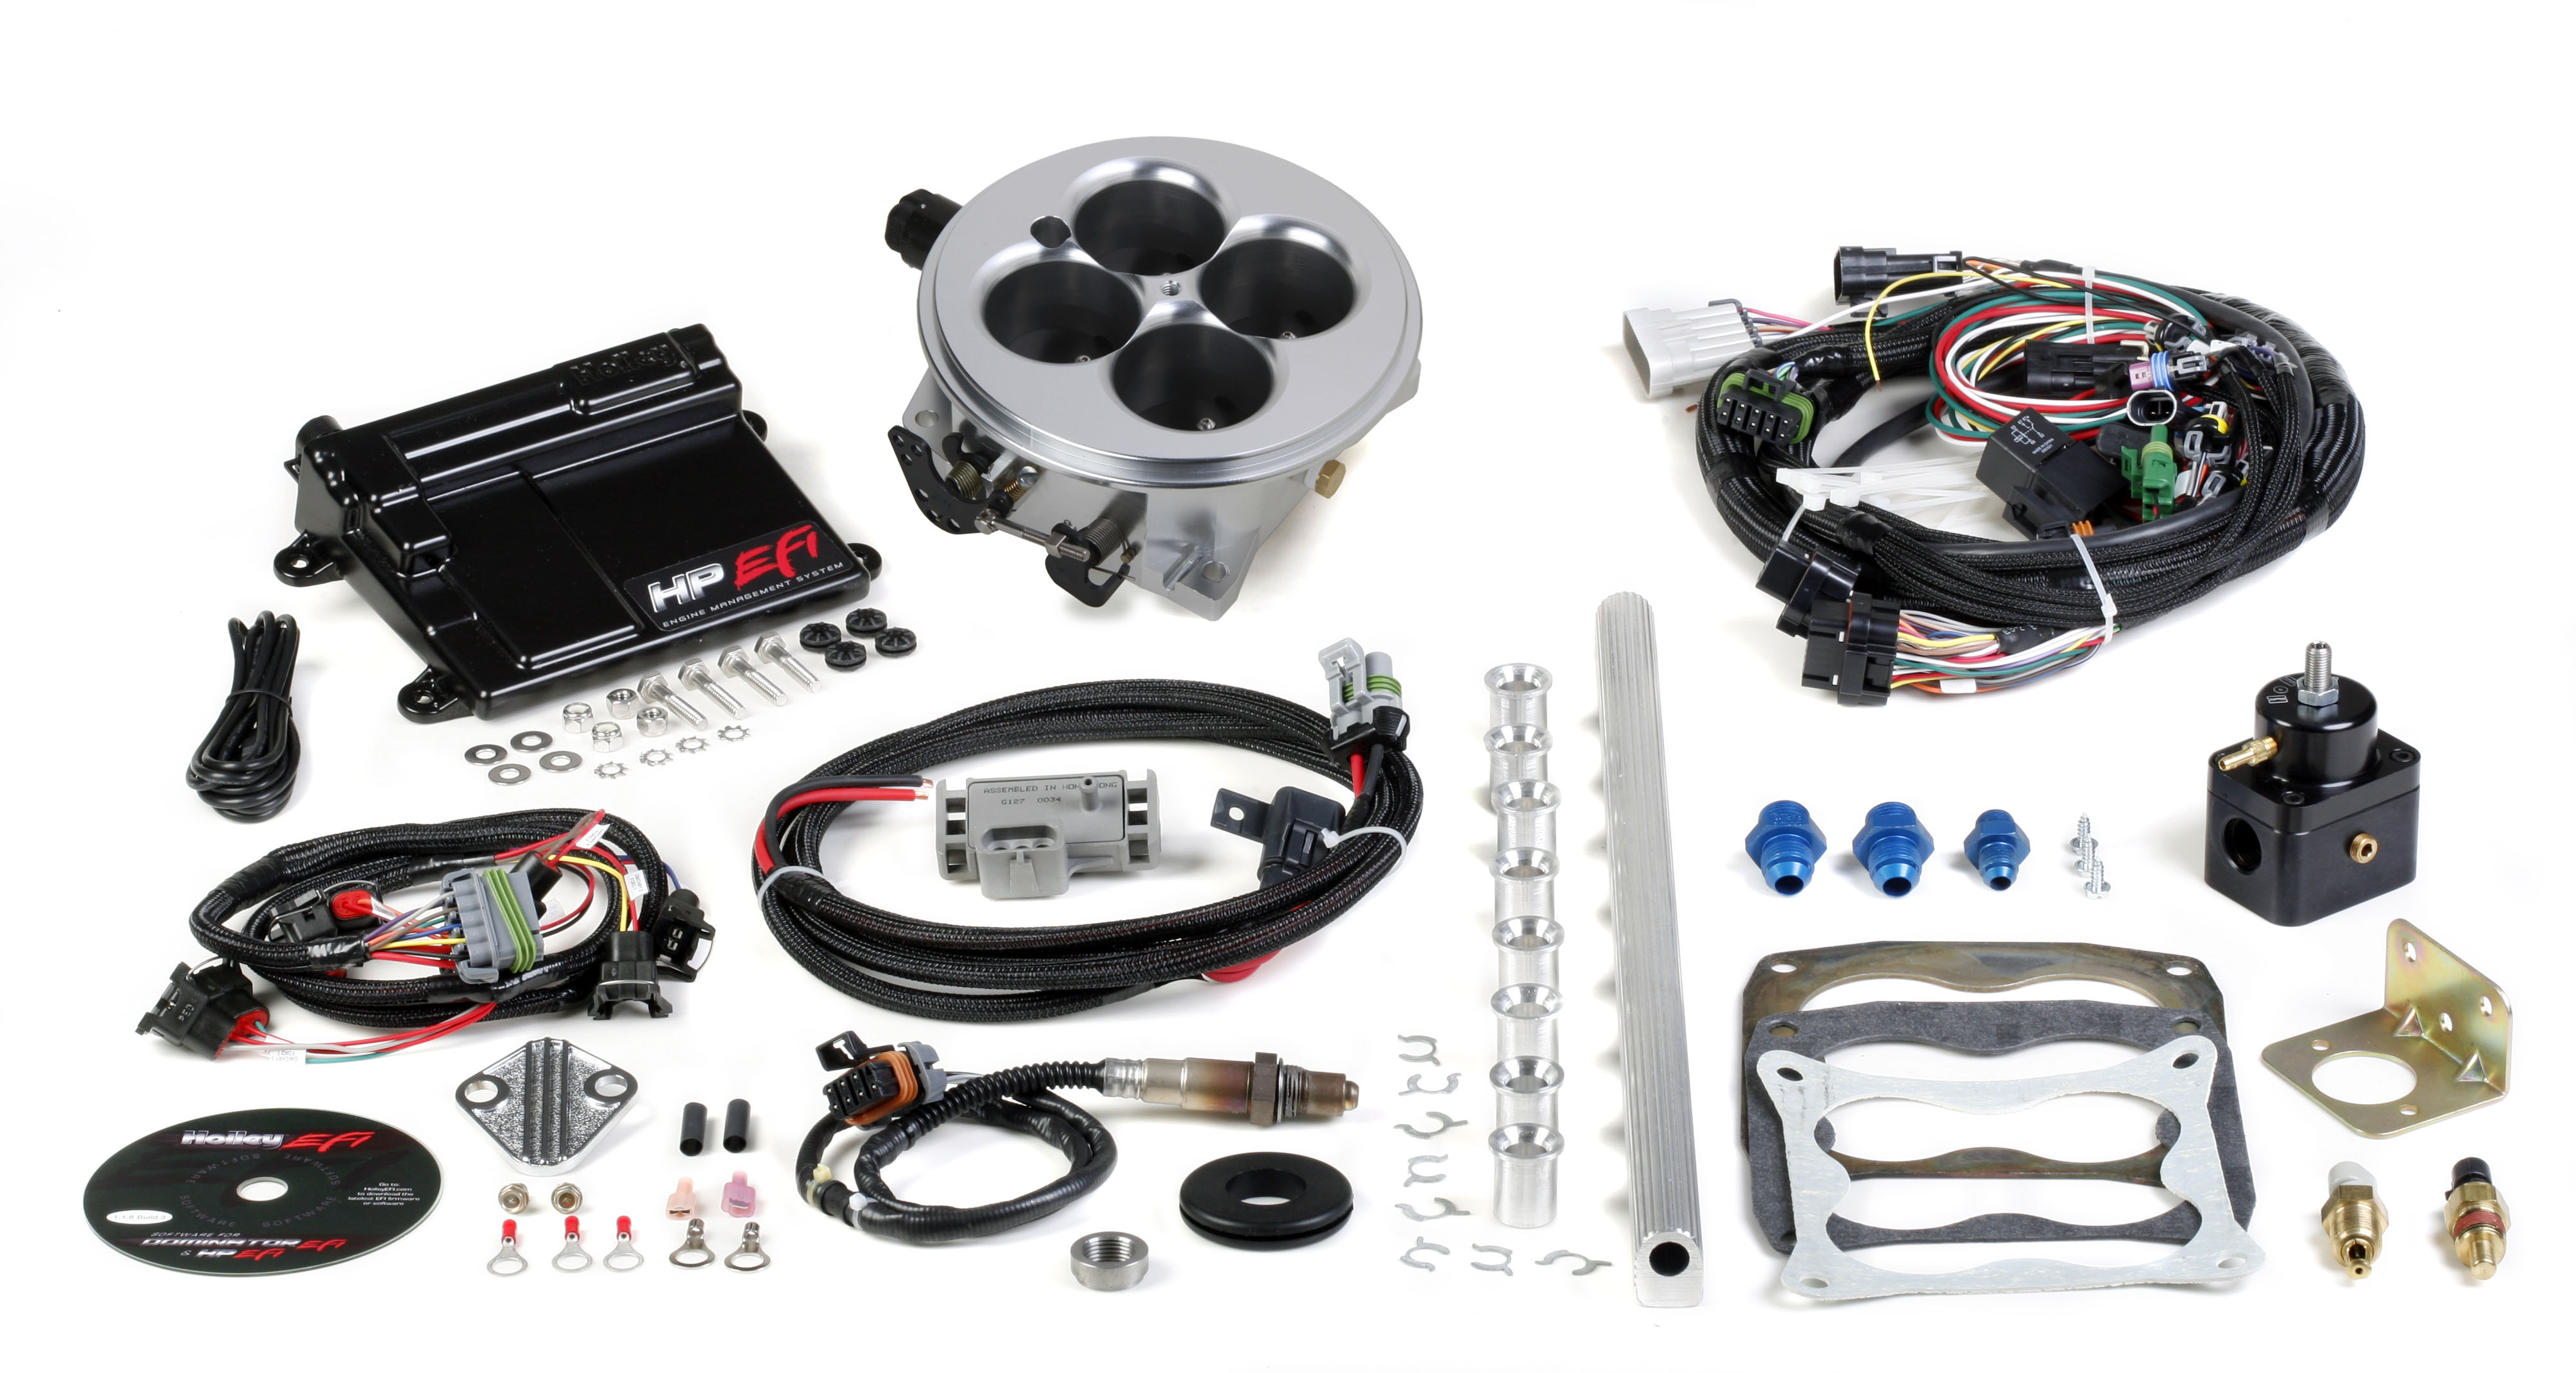 550-501 Holley Performance Fuel Injection System For Use With V8 Engines on